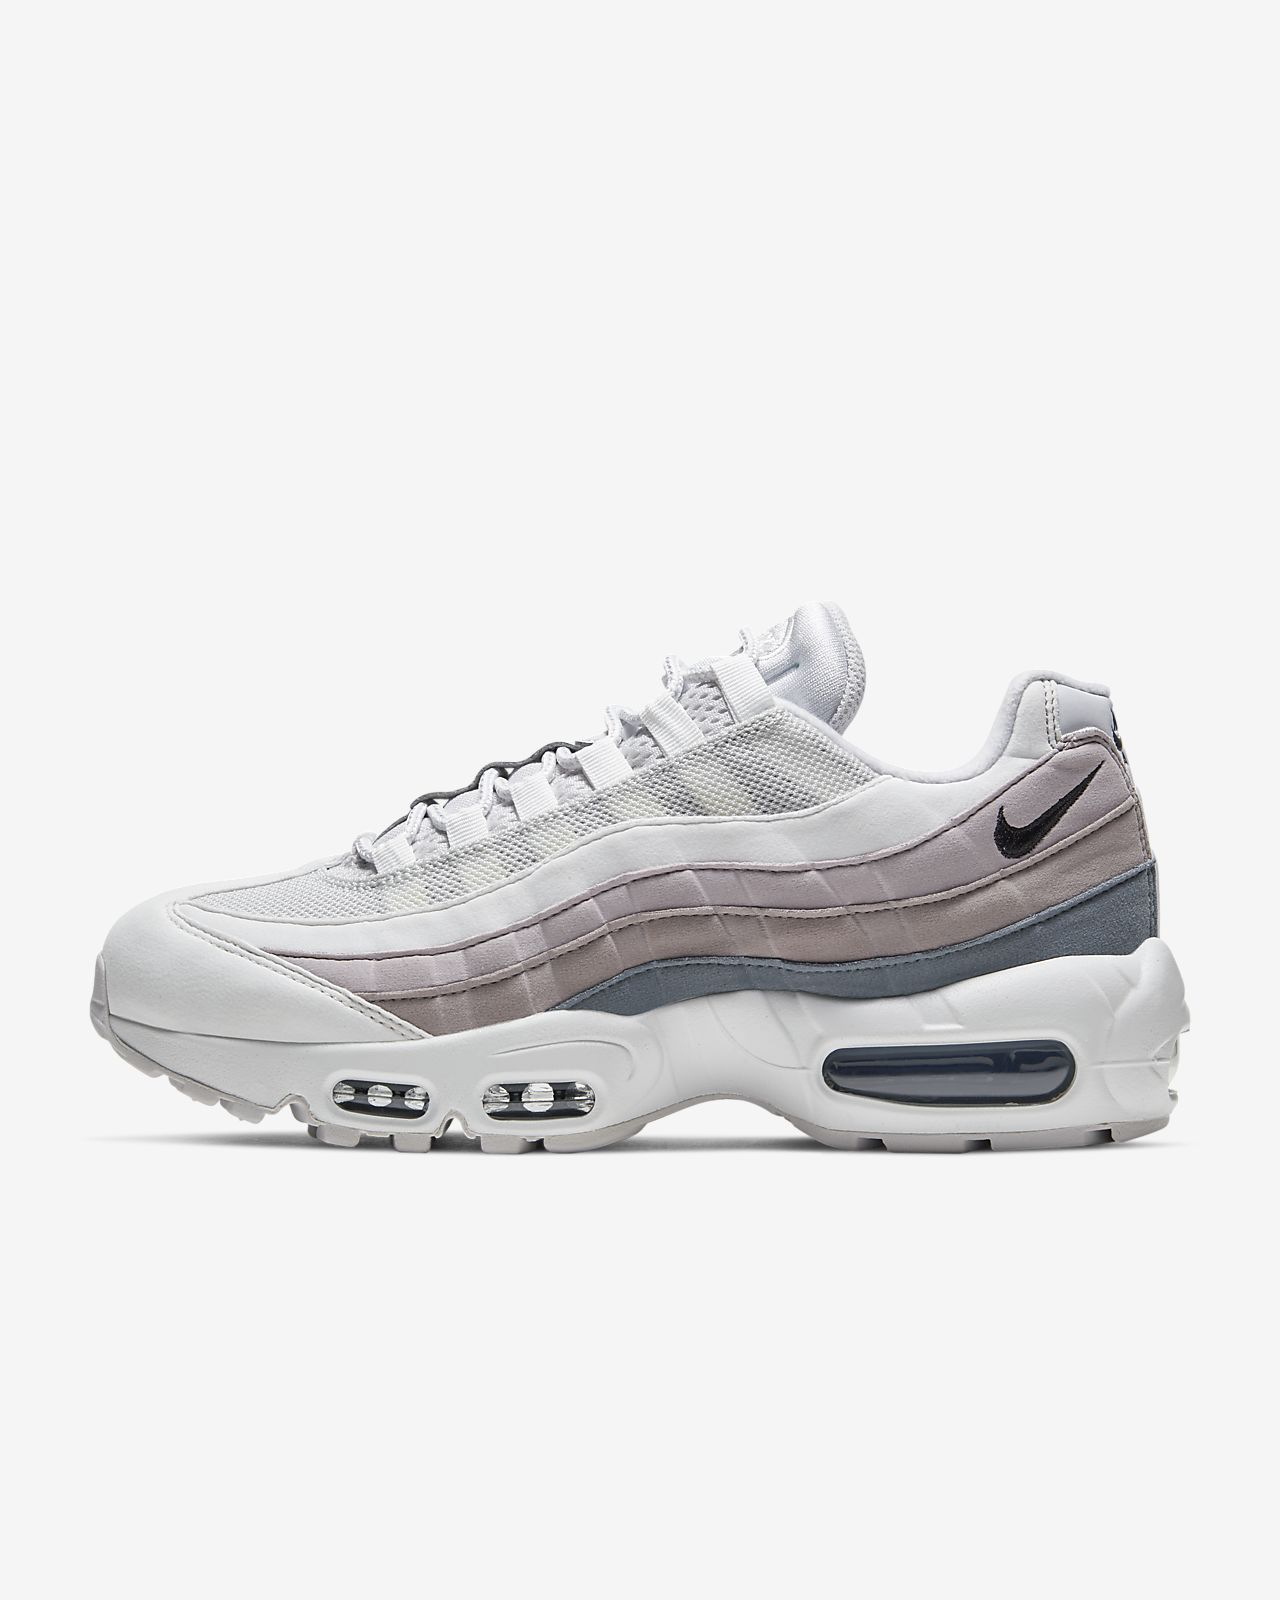 133d919f3d3dce Chaussure Nike Air Max 95 pour Femme. Nike.com CA